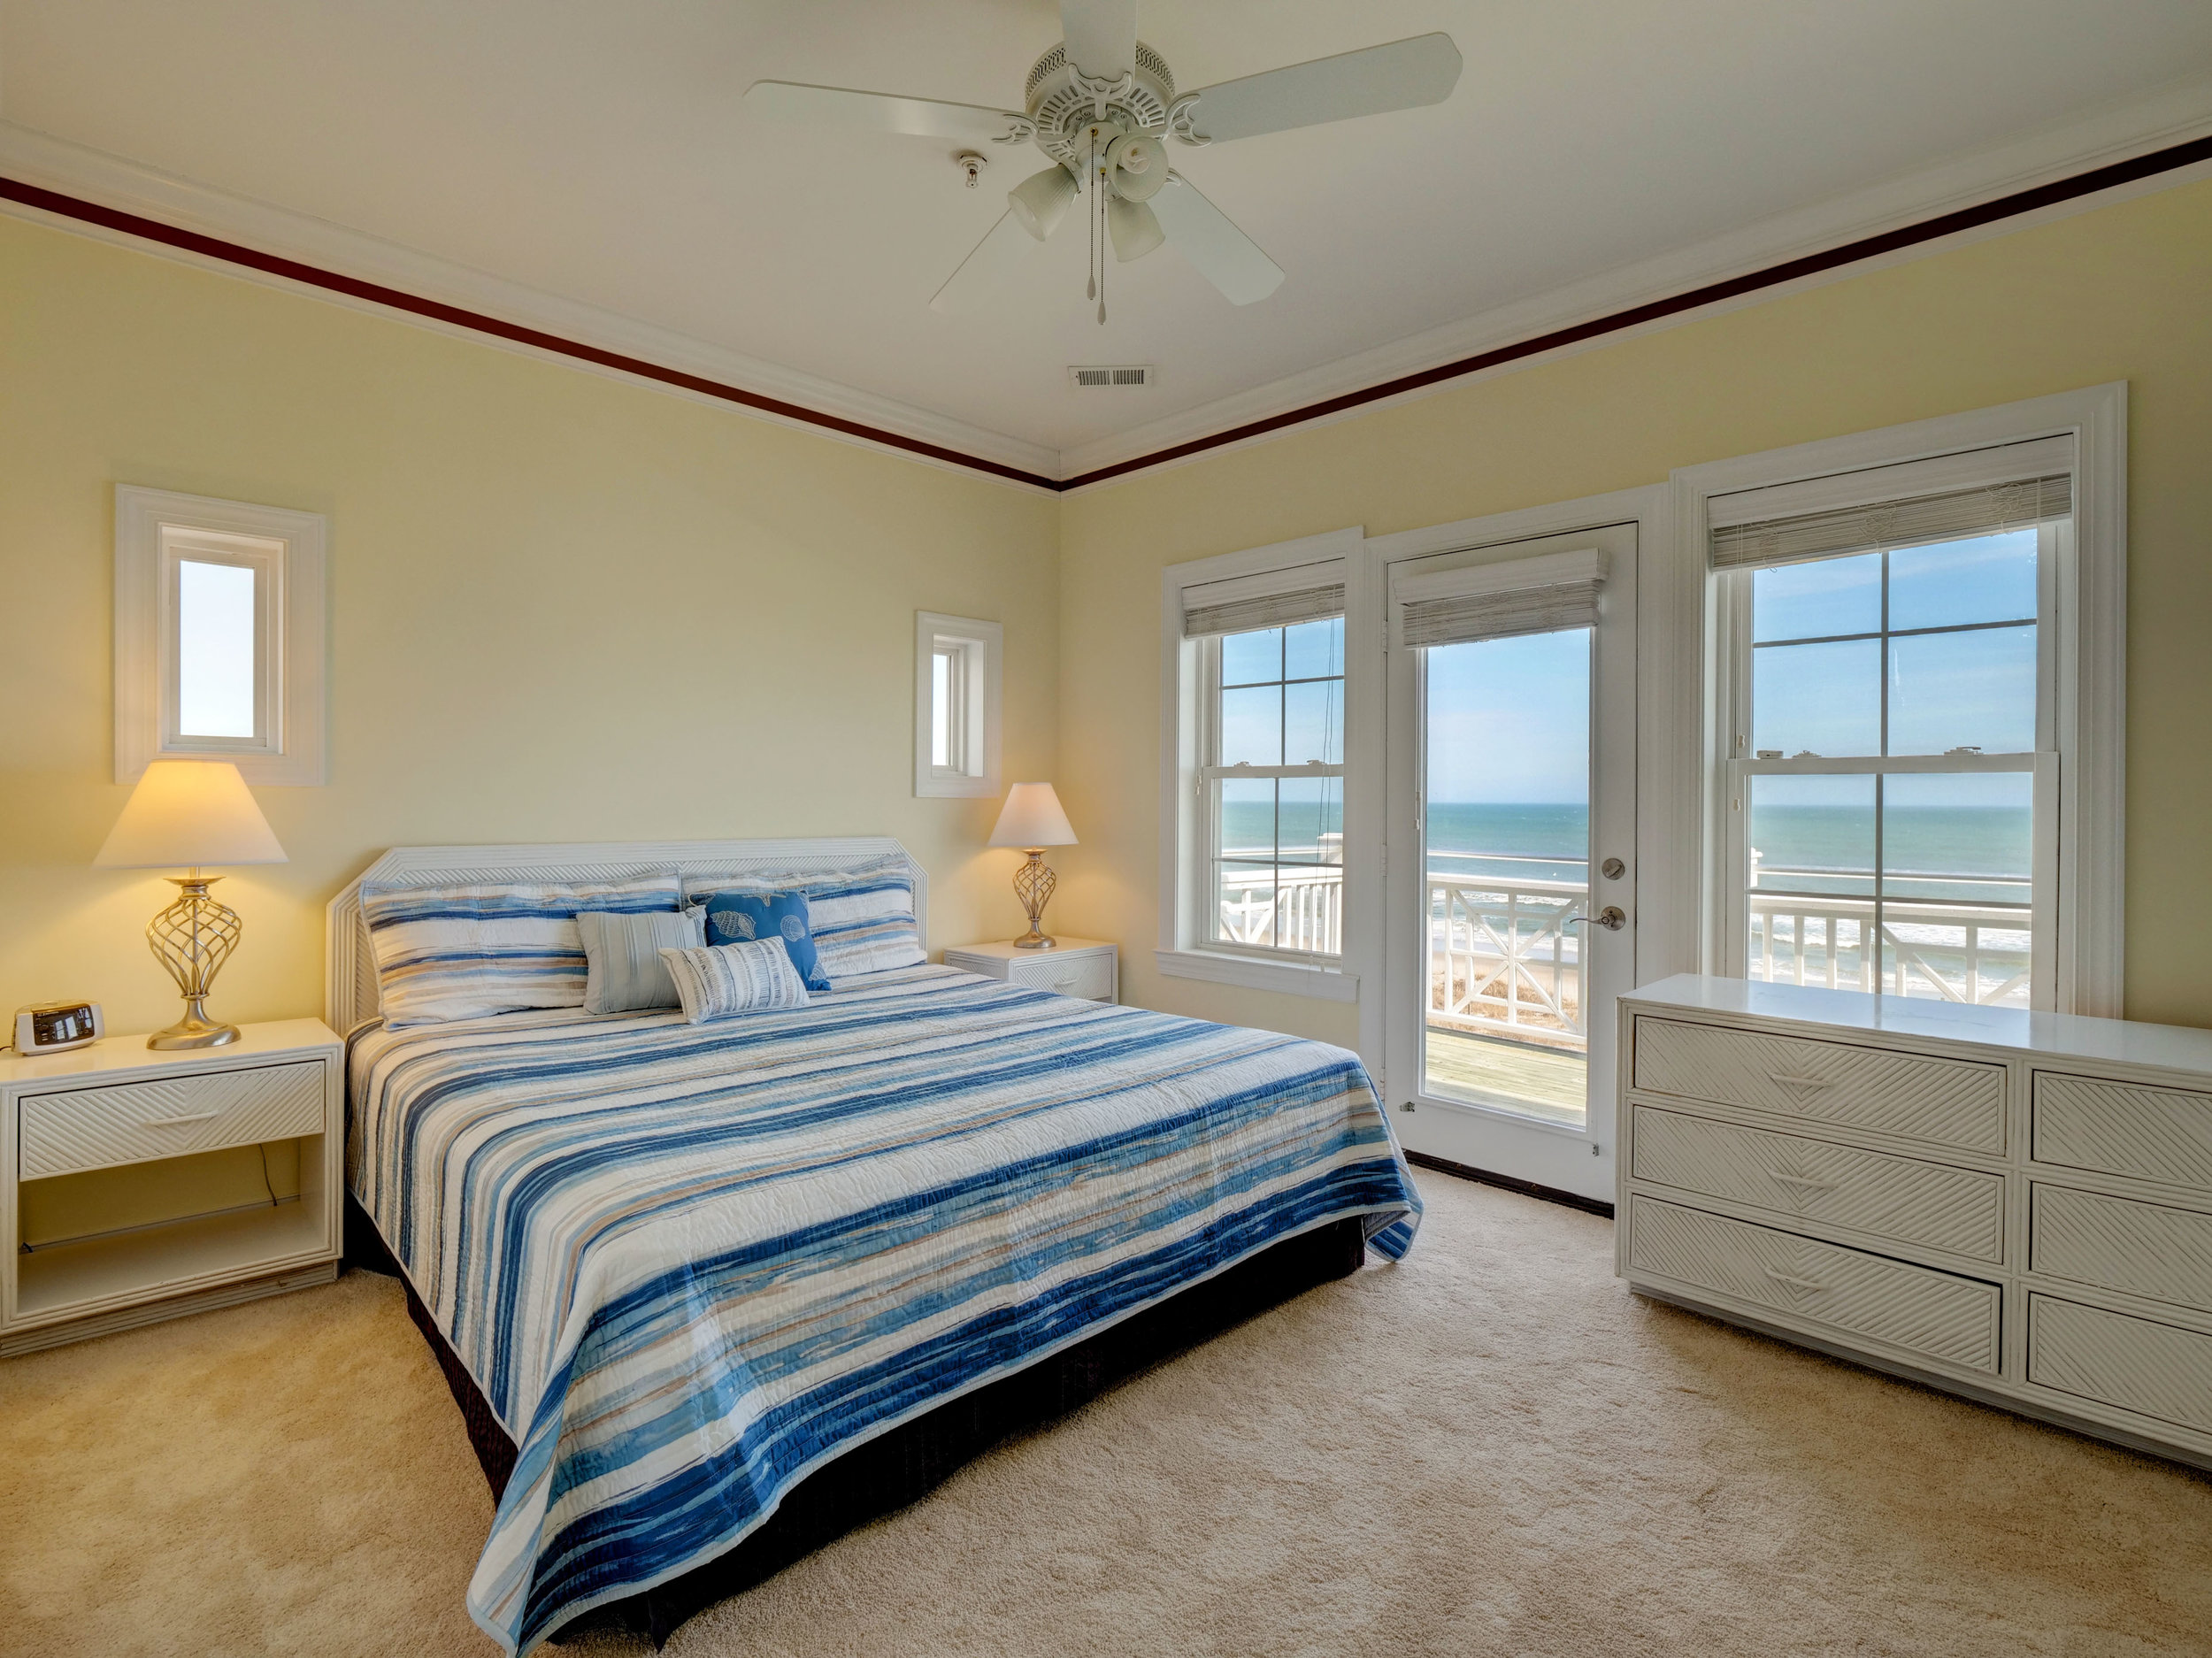 202 N Fort Fisher Blvd Unit 8-print-017-73-Master Bedroom view 1-3710x2781-300dpi.jpg